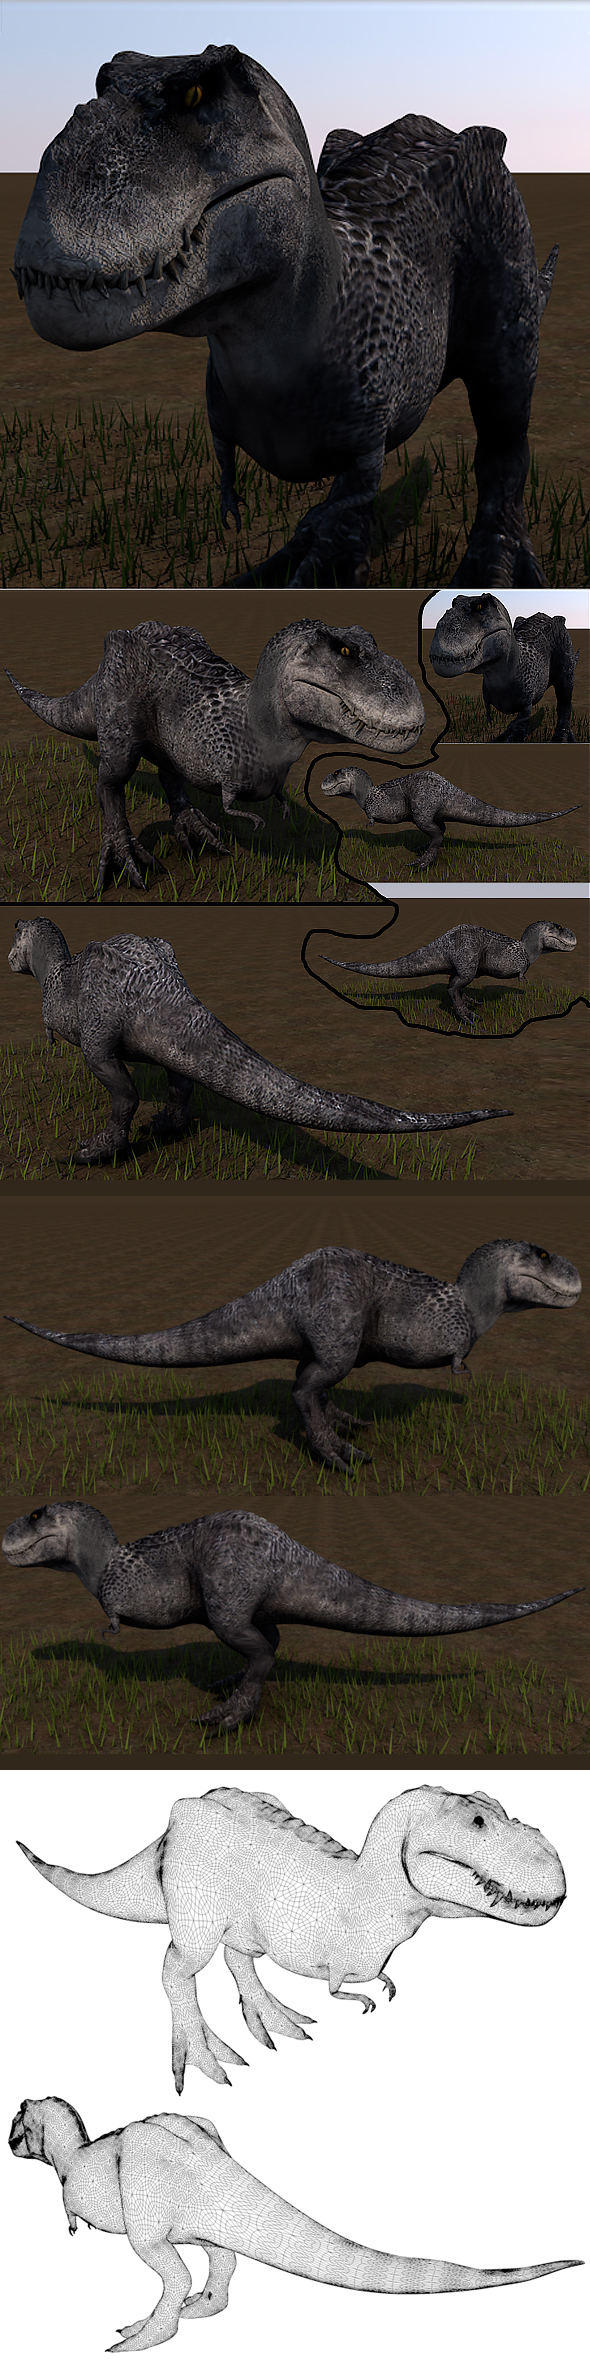 T-rex 3D ( Full textures & edition ) - 3DOcean Item for Sale